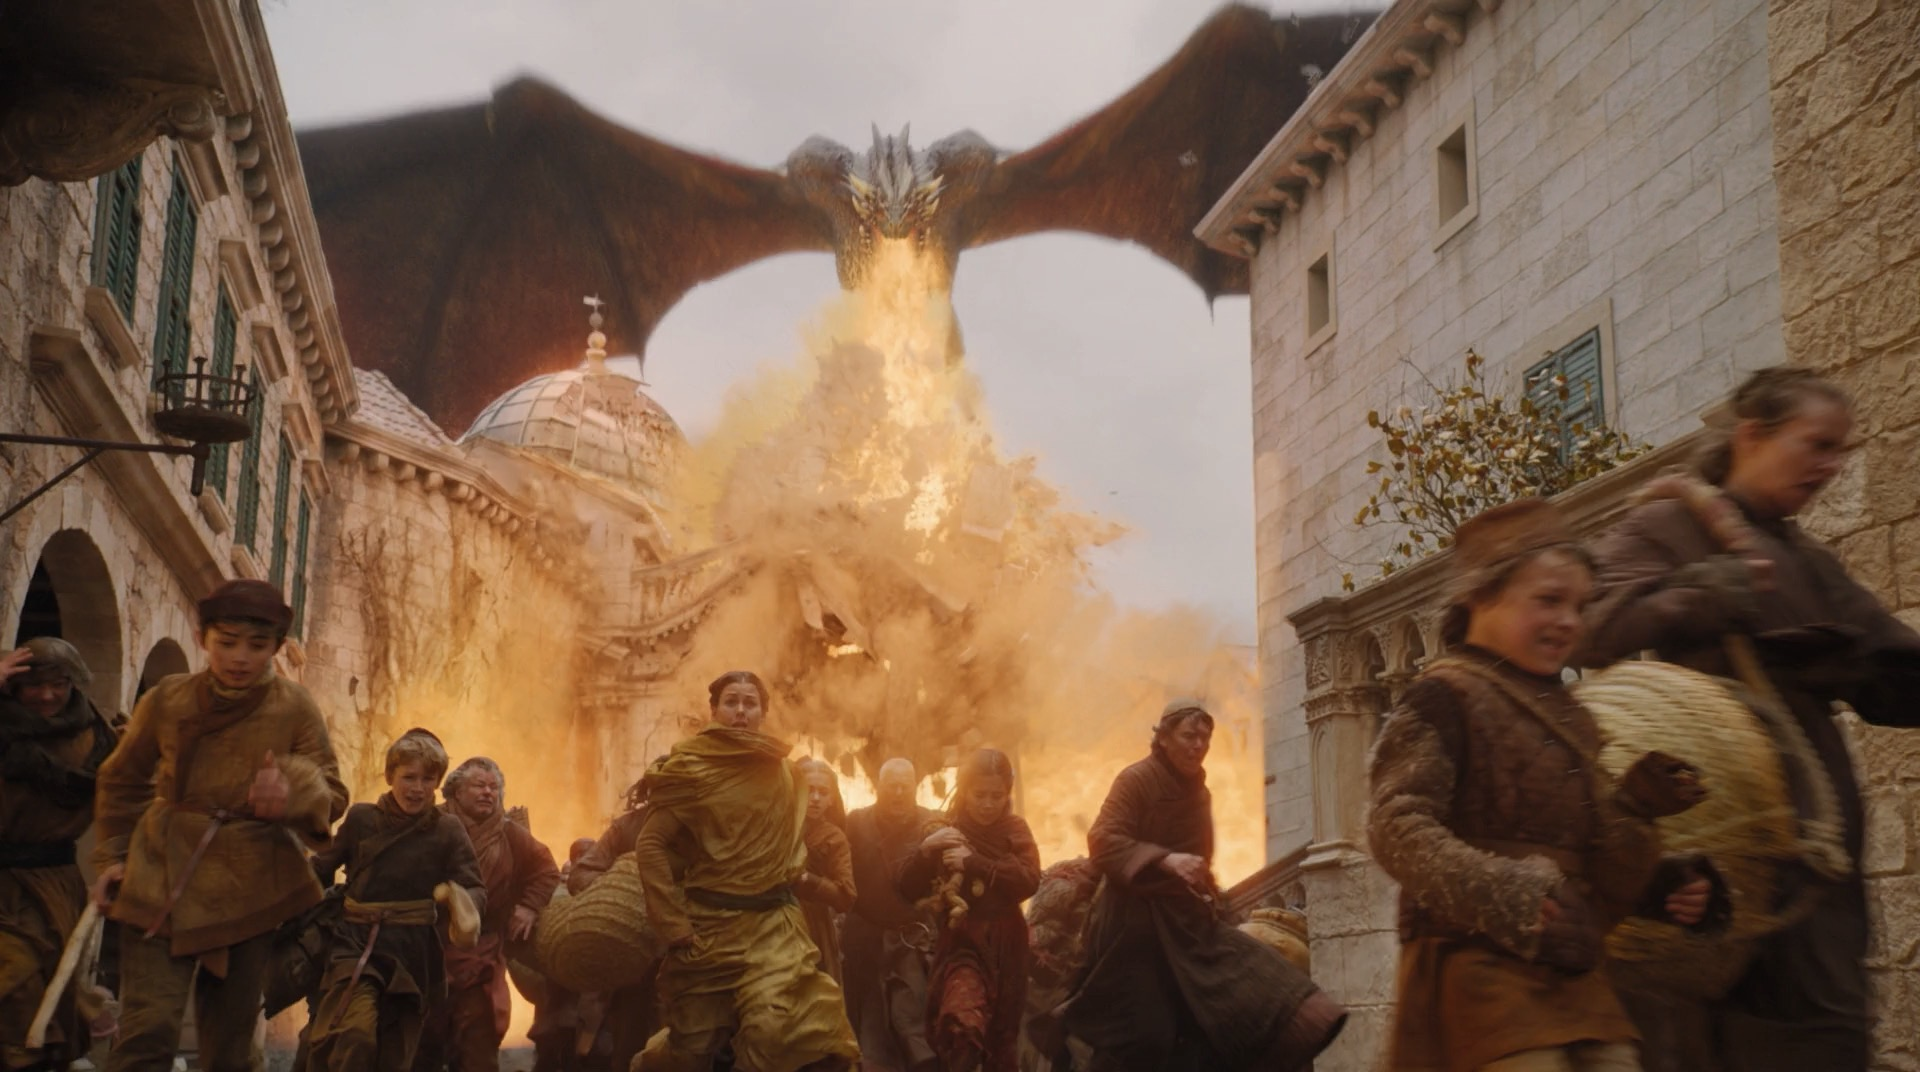 Game of Thrones prequel House of the Dragon could be coming in 2022